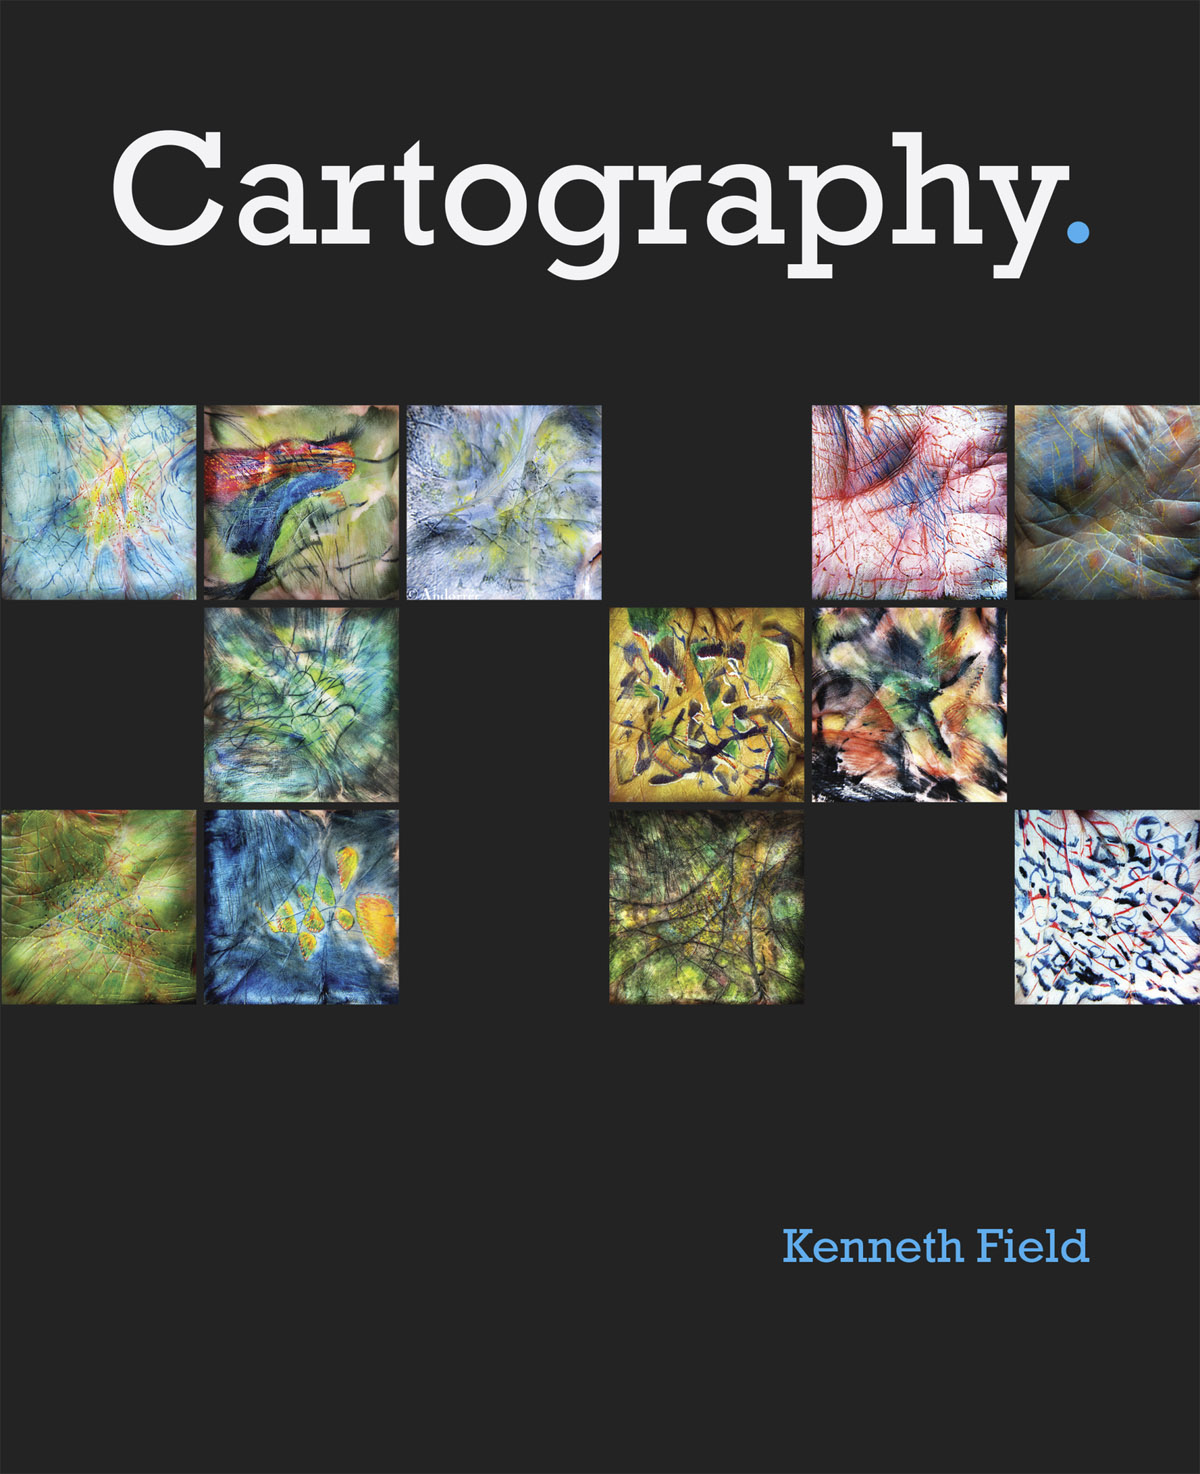 Esri announces the publication of Cartography.